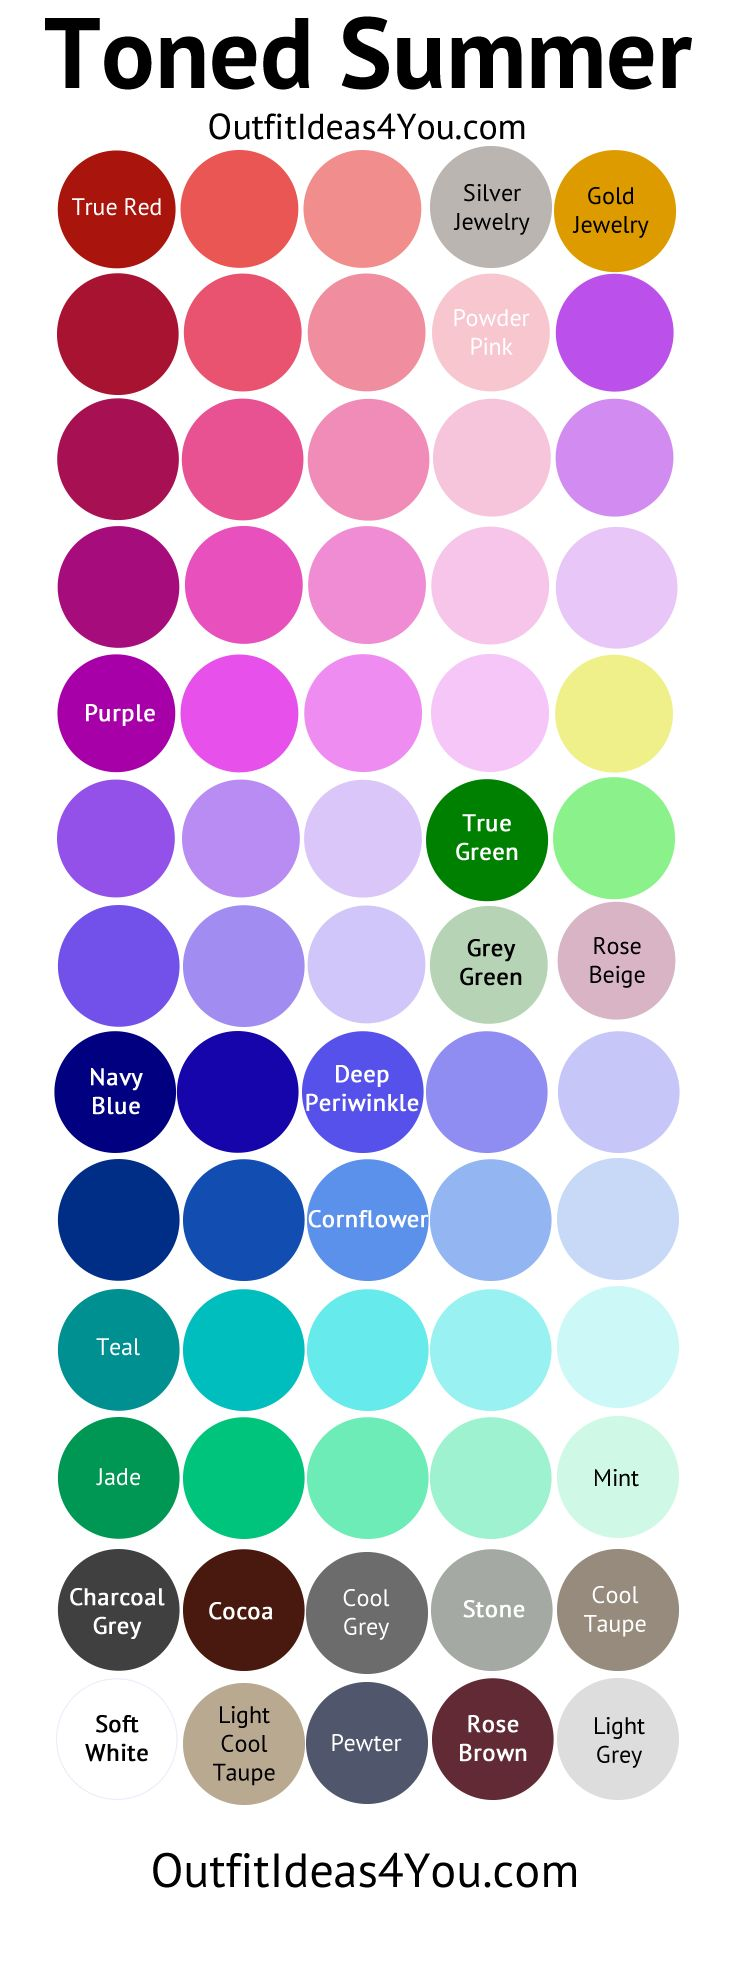 Toned Summer Color Palette (Soft Summer Light)   Best Colors (info. from a site diff. from this pin):  Grey, slate grey, charcoal, light desert sand, khaki, taupe, icy pink, rose, soft fuchsia, red-violet, raspberry, sea green, evergreen, emerald green, aqua, light aqua, true aqua, lavender, dusty purple, warm dusty purple, periwinkle, navy.